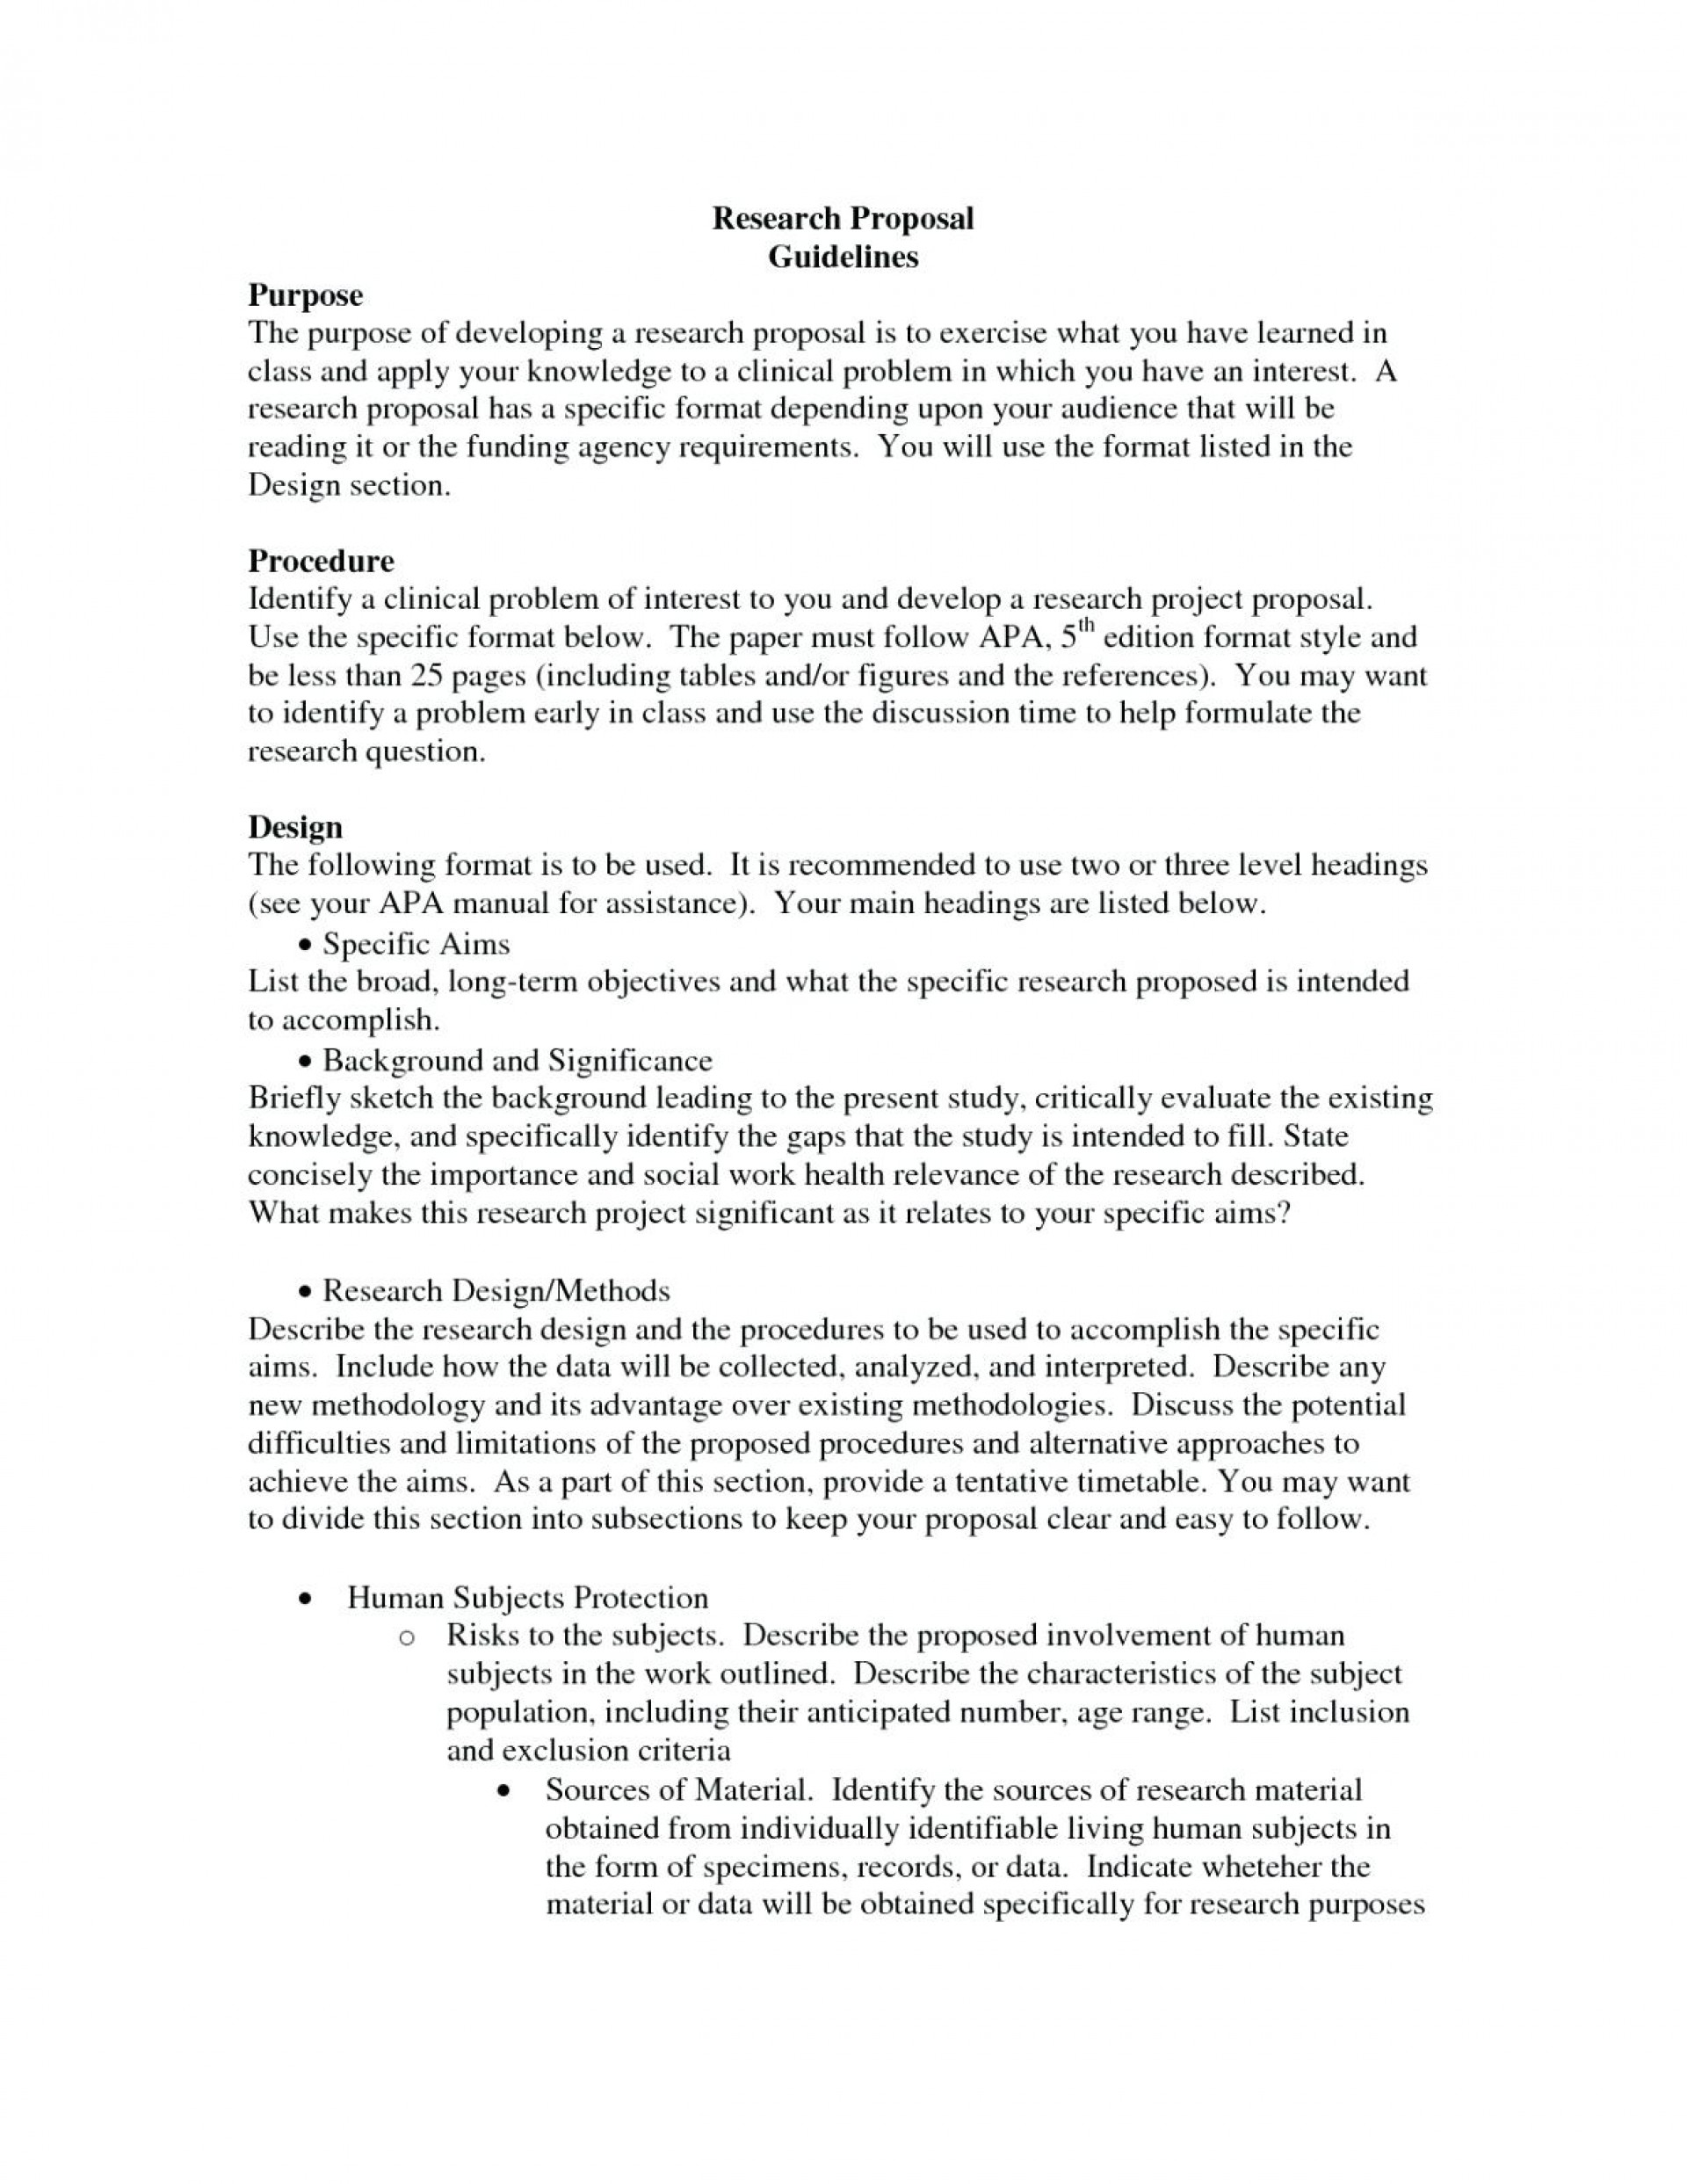 examples of writing a research proposal paper